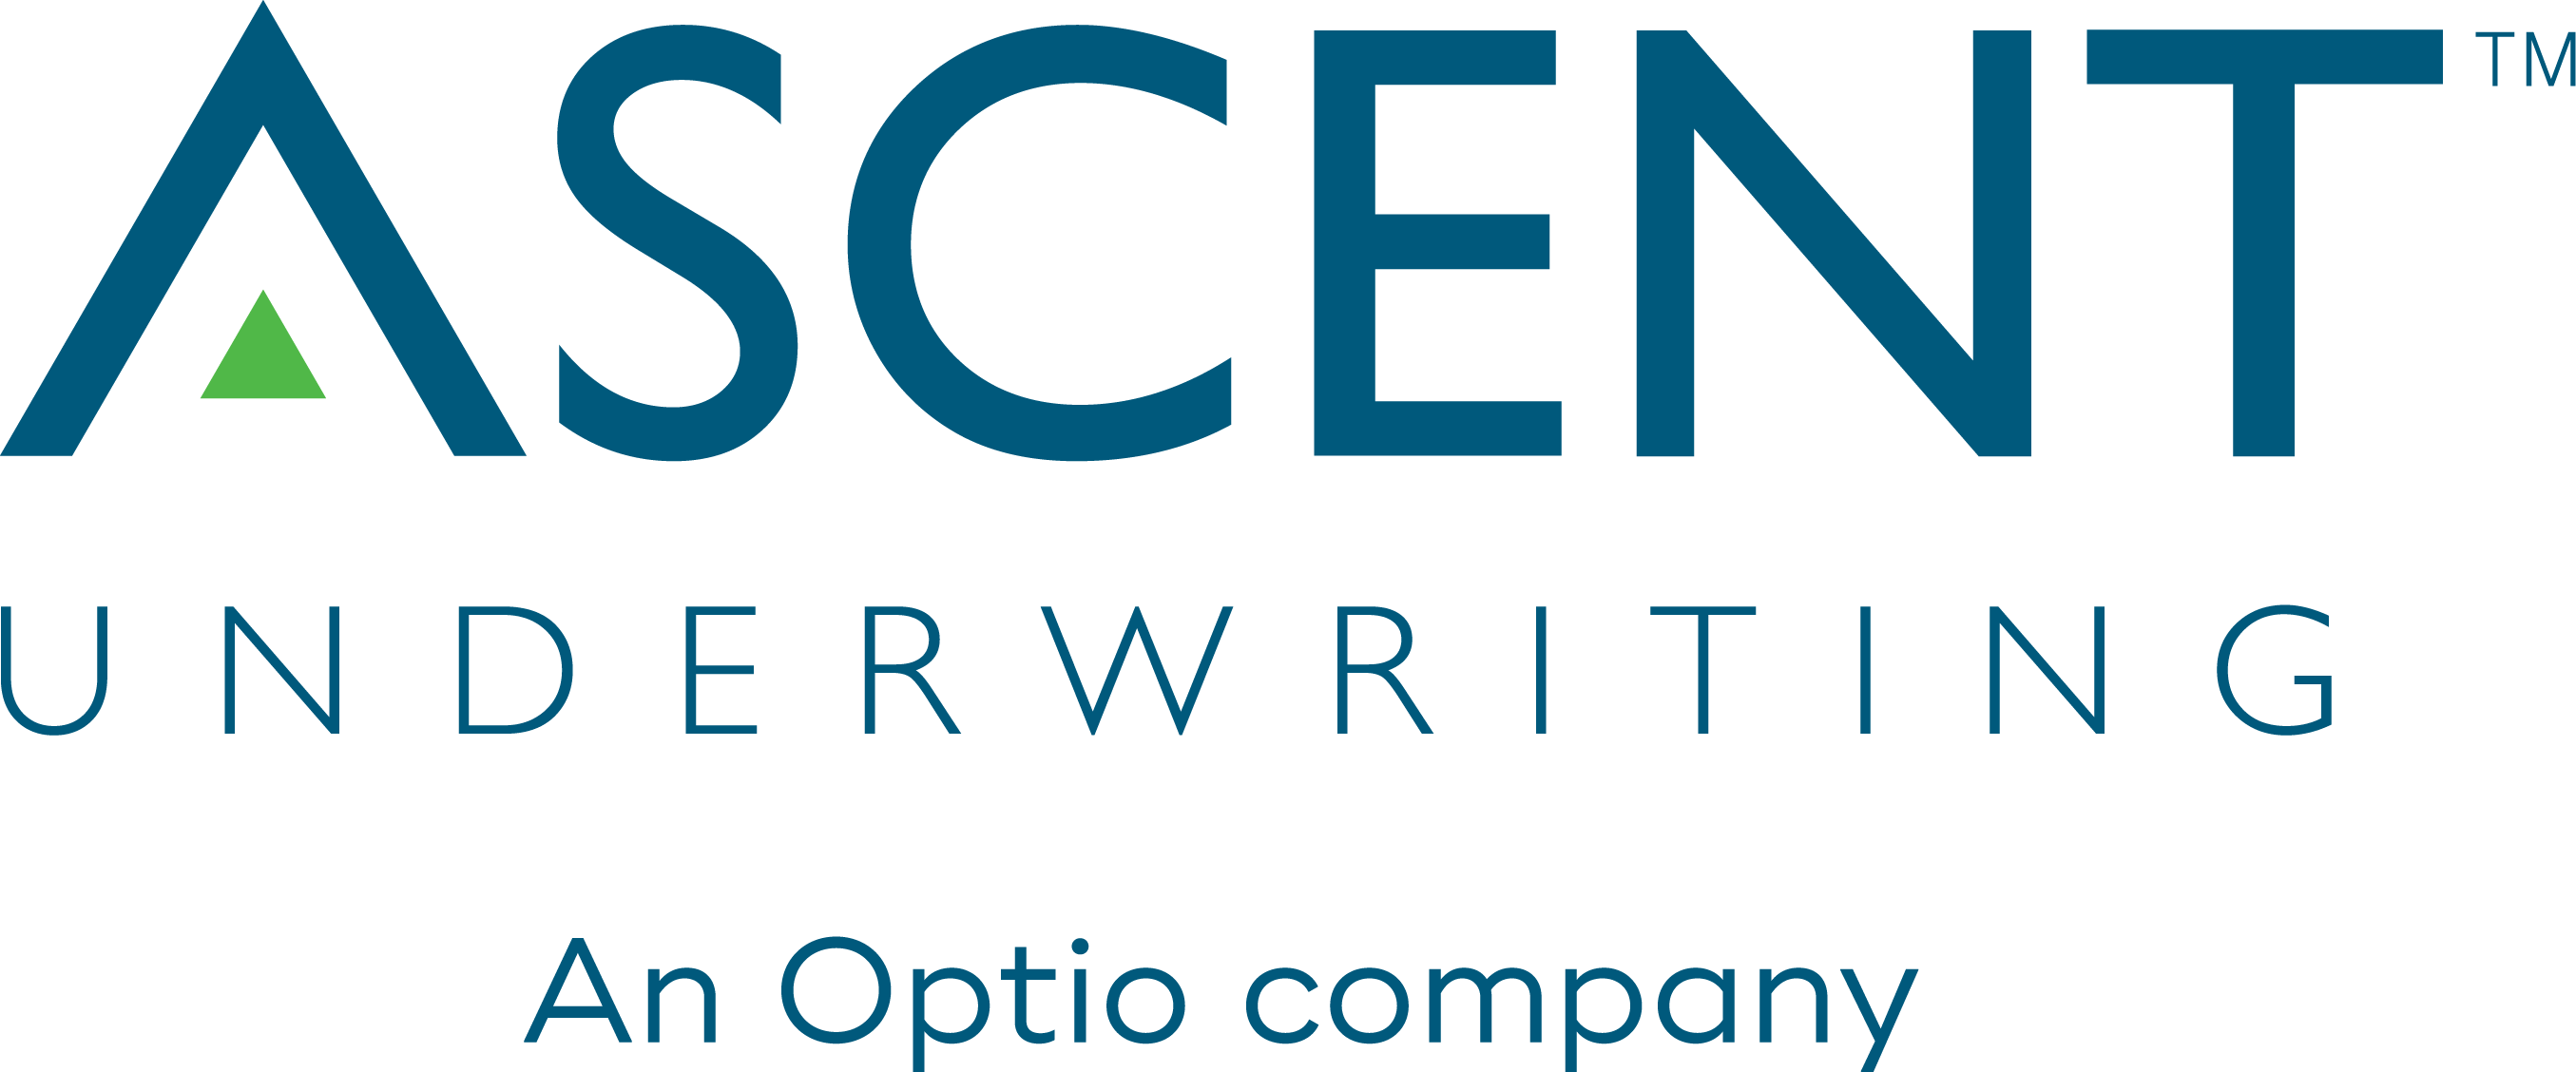 Ascent Cyber Services